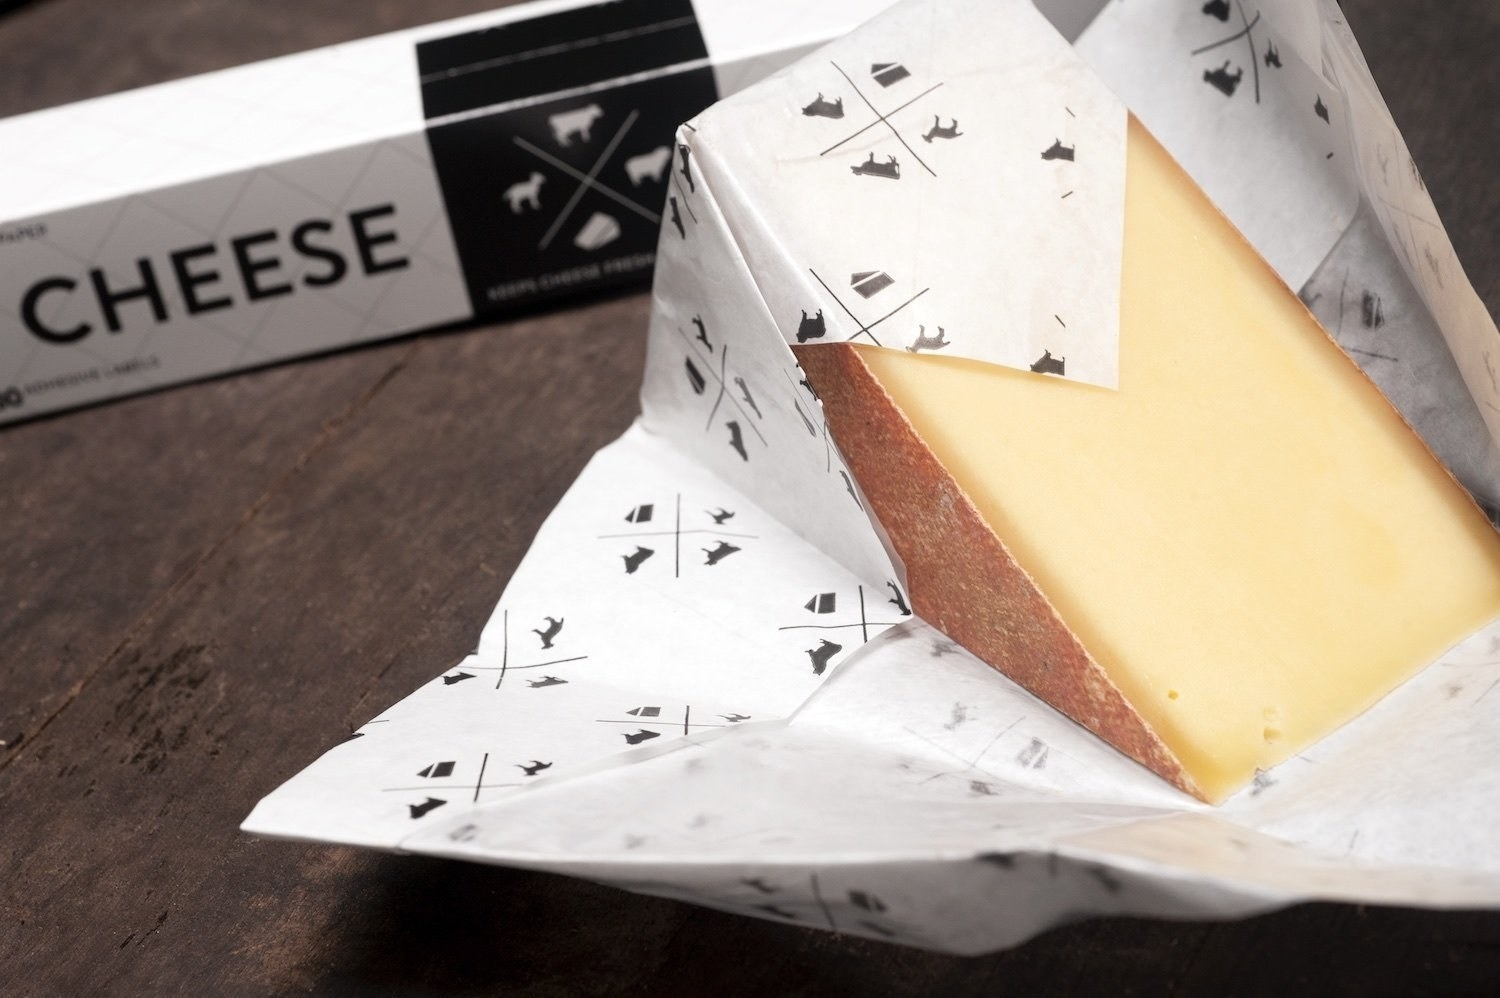 The paper wrapped around a triangle of hard cheese